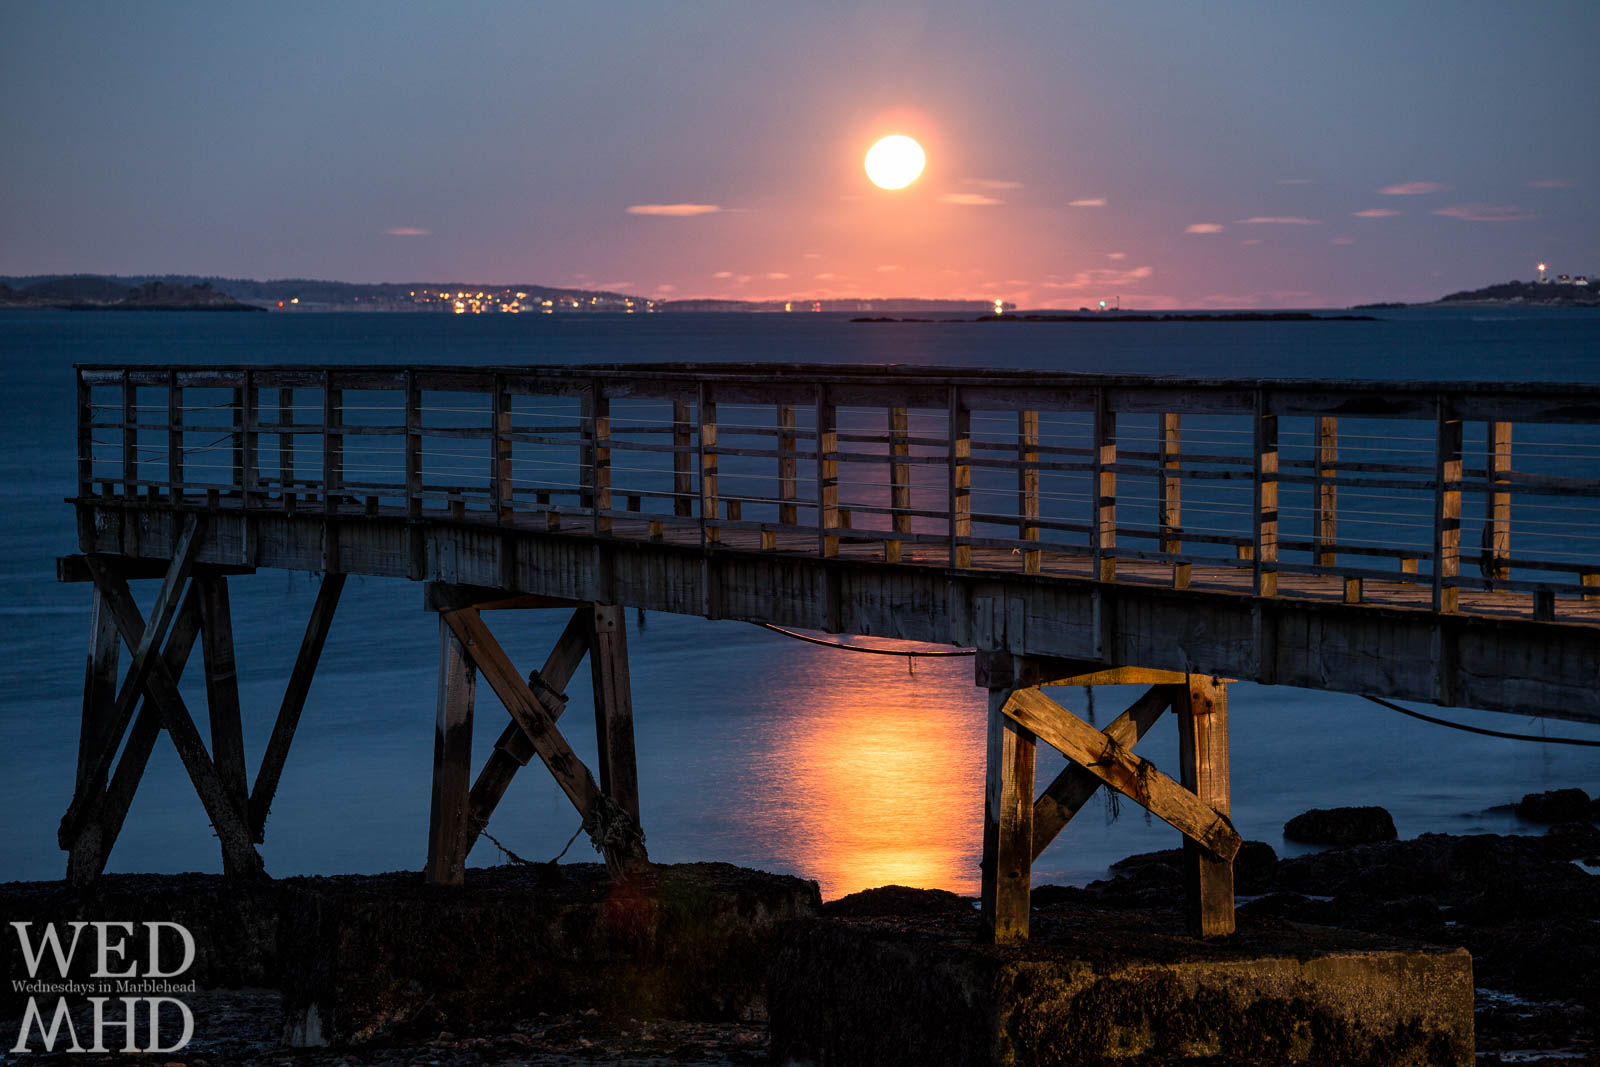 The Long Night Moon Rises over the Pier on Mooring Road